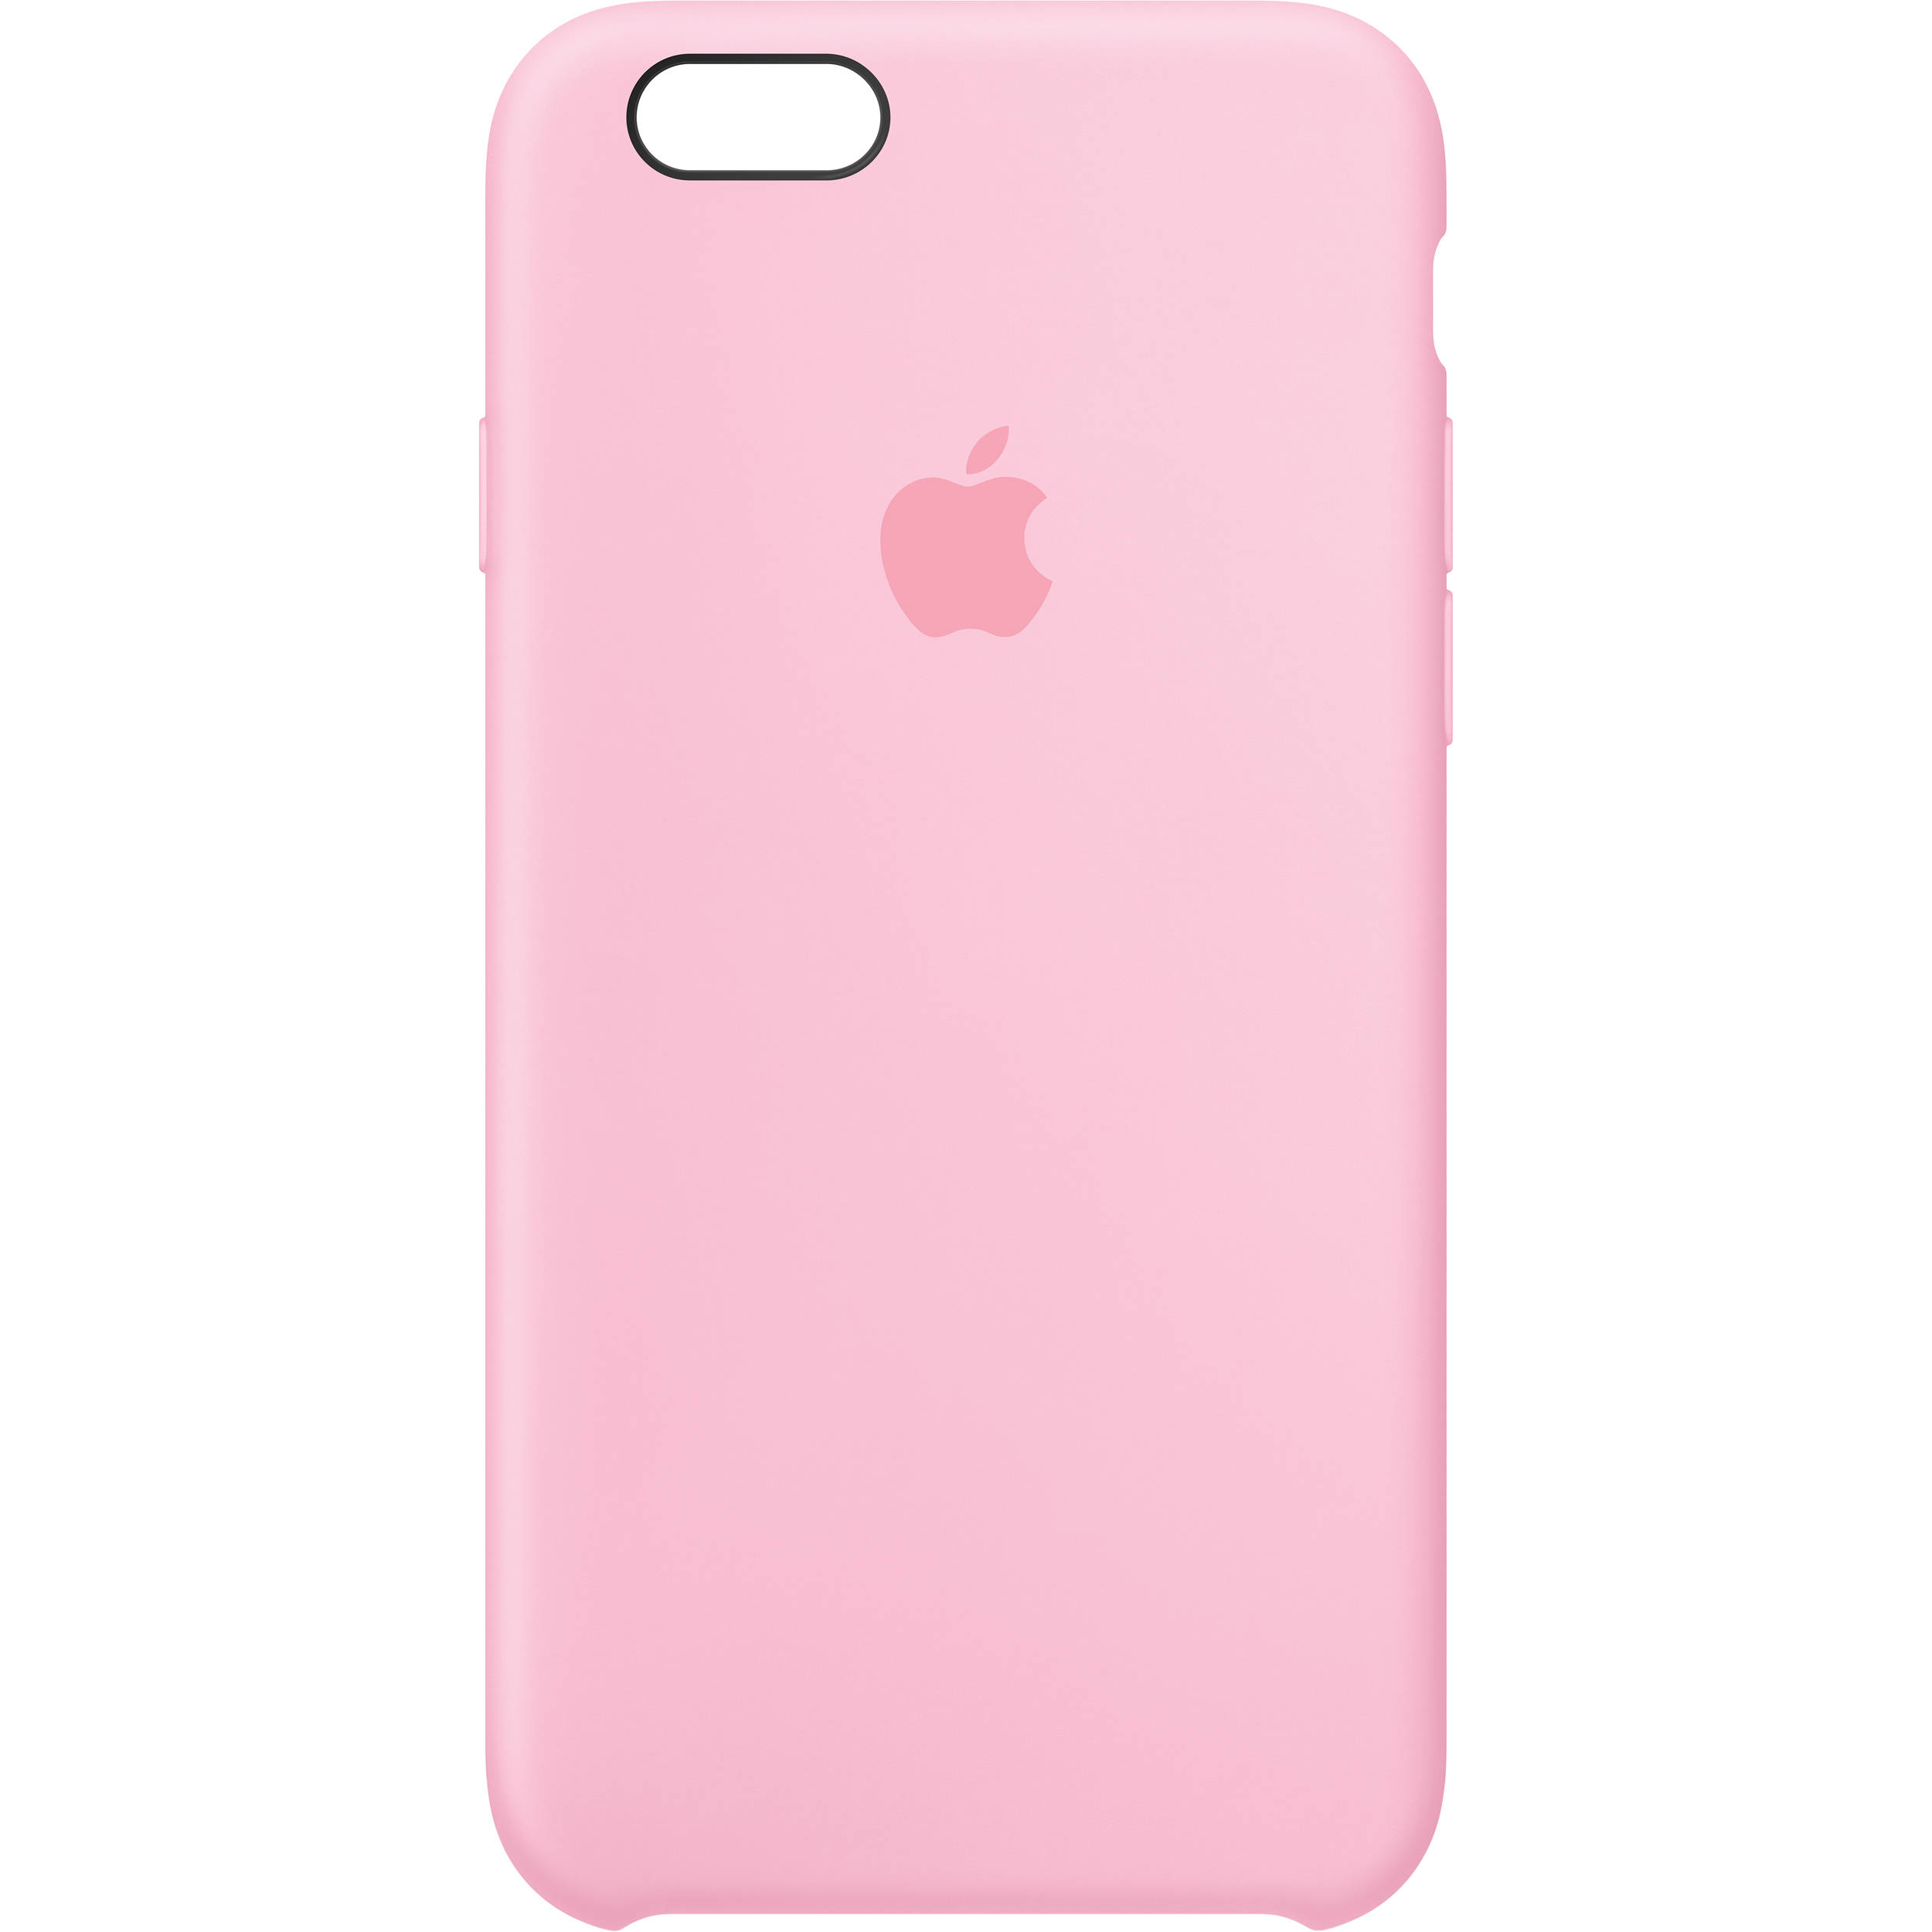 separation shoes 47a59 2f8ab Apple iPhone 6/6s Silicone Case (Light Pink)